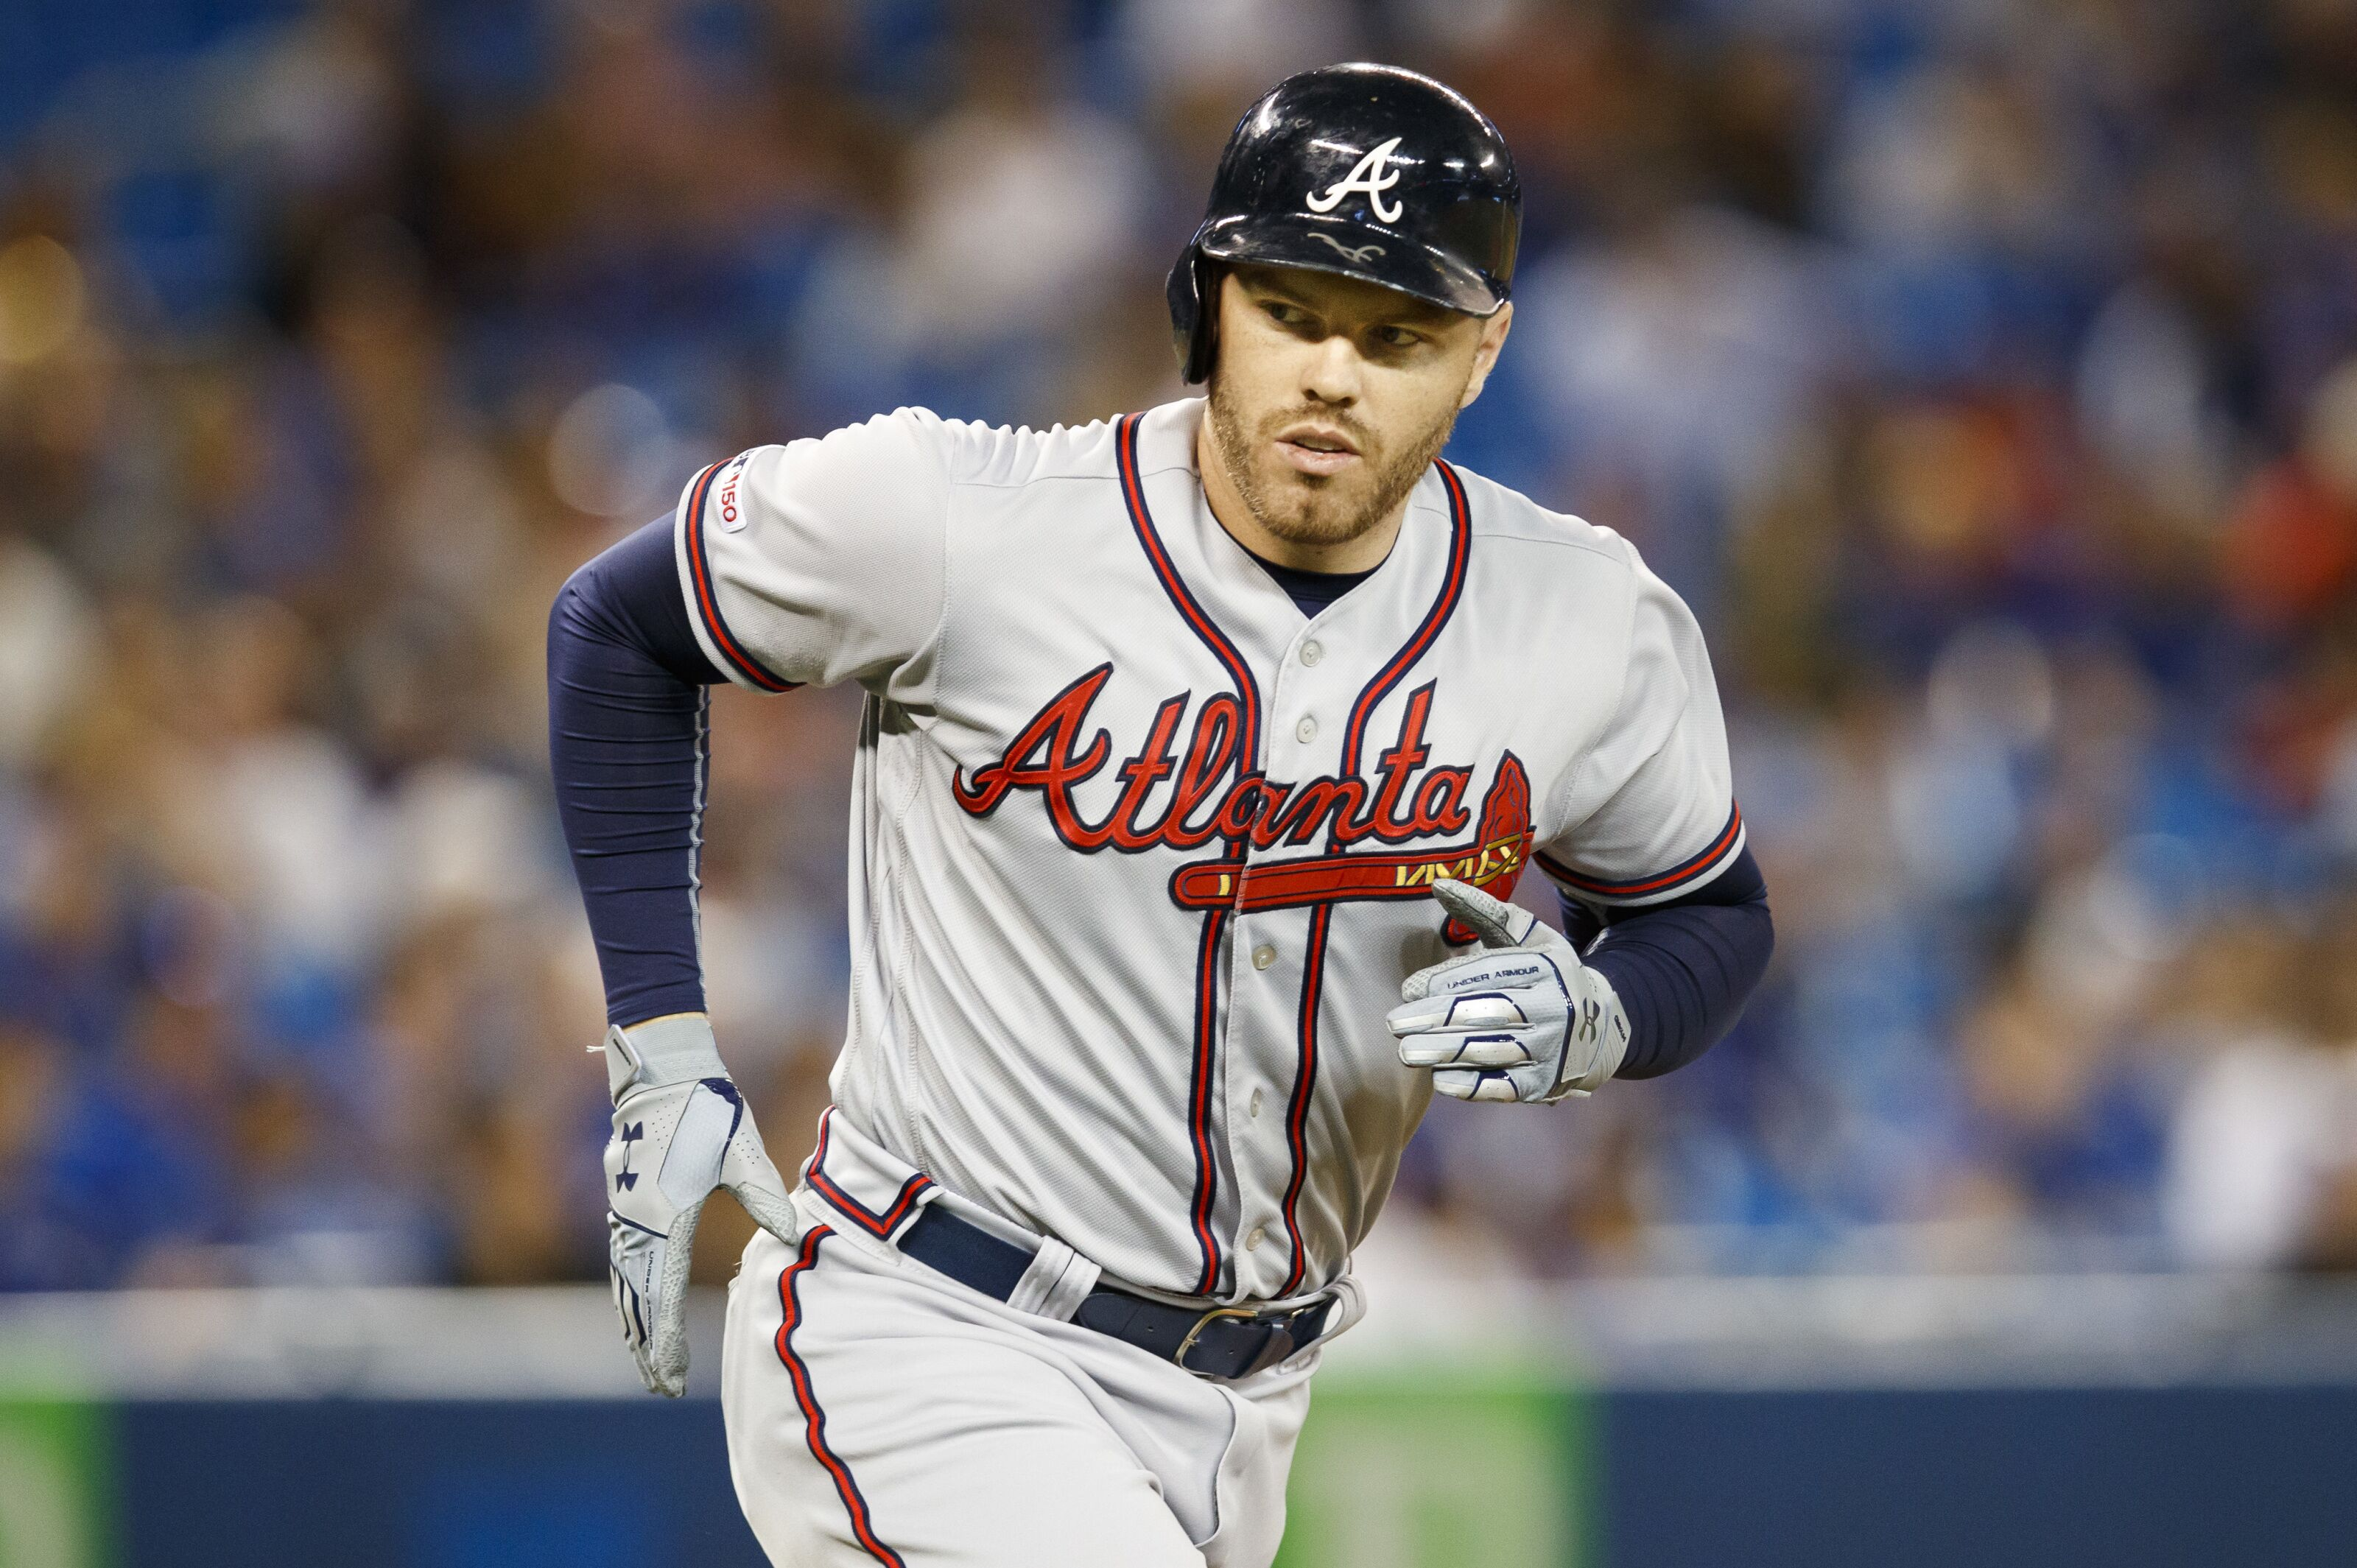 Should Atlanta Braves go ahead and (try to) extend Freddie Freeman?